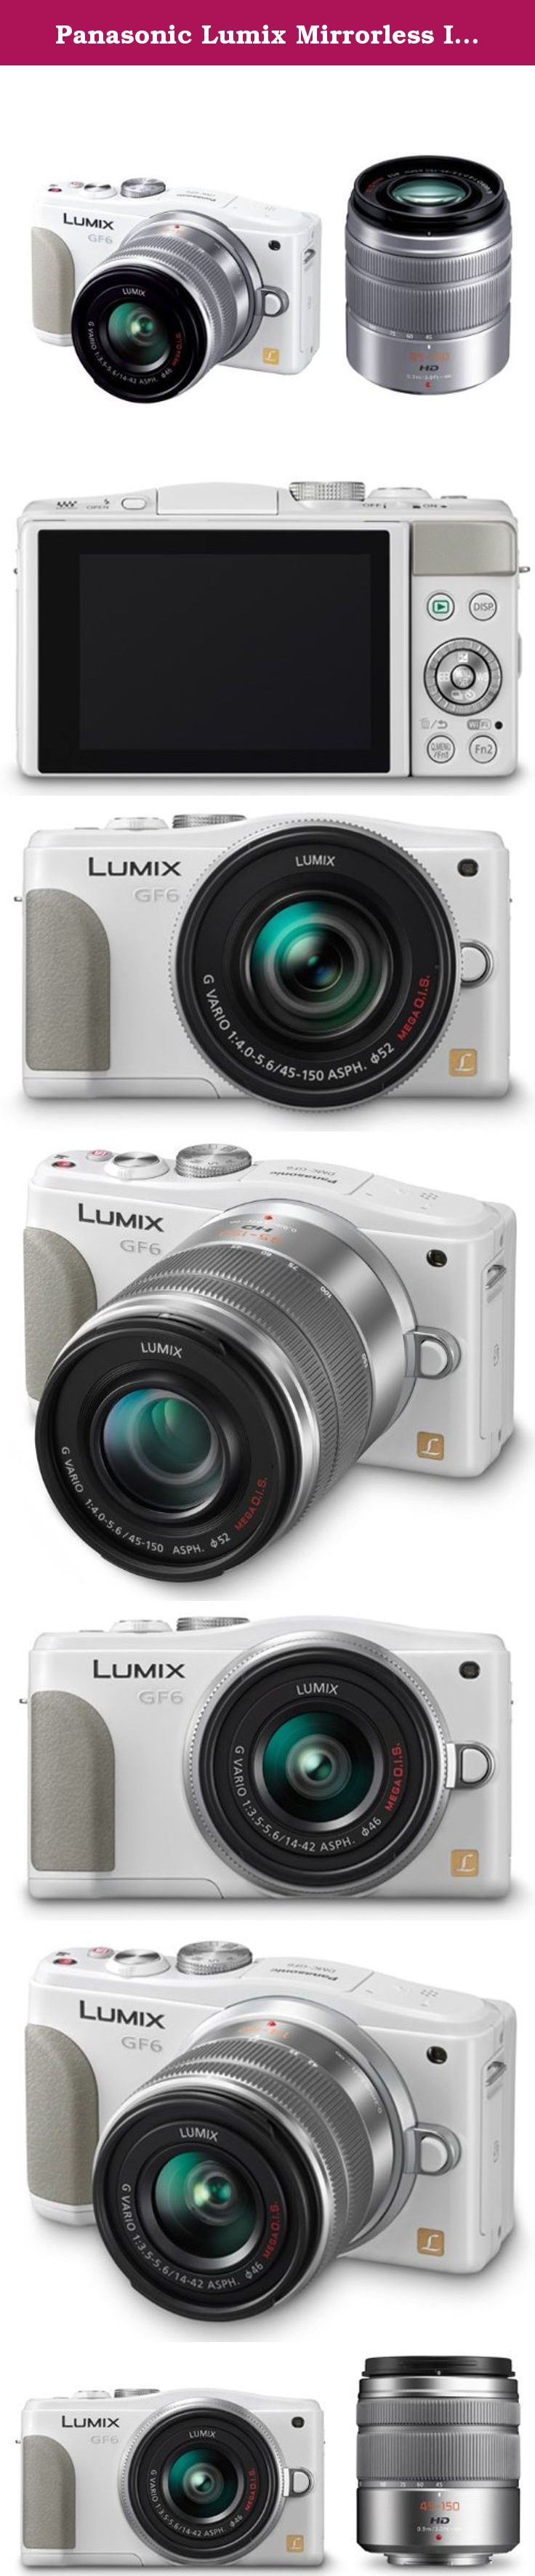 "Panasonic Lumix Mirrorless Interchangeable Lens Camera Lumix Gf6 Double Zoom Lens Kit Standard Zoom Lens / Telephoto Zoom Lens Comes with White Dmc-gf6w-w - International Version (No Warranty). Double zoom lens kit ""14-42mm / F3.5-5.6 II standard zoom lens"" and of ""45-150mm / F4.0-5.6 telephoto zoom lens"" comes. 16 million pixel Live MOS sensor / newly developed Venus Engine / Low Light AF equipped. 0.5 seconds fast start-up and high-speed AF / face-to-face tilt touch panel monitor...."